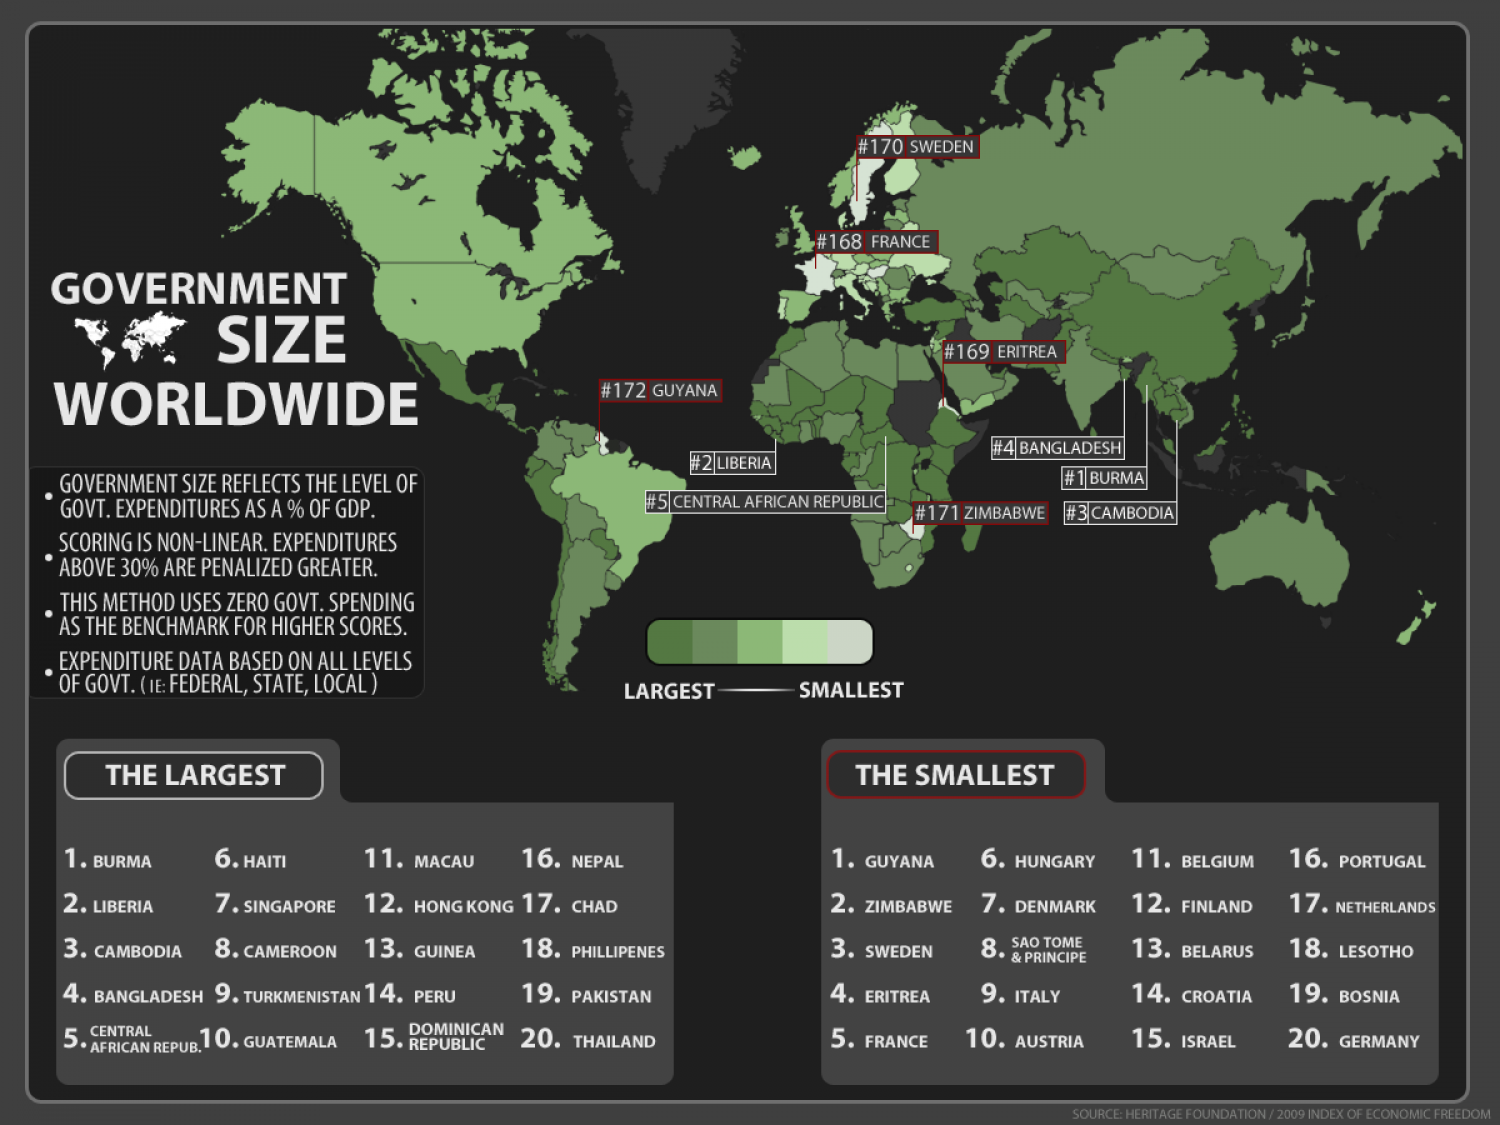 Government Size Worldwide Infographic